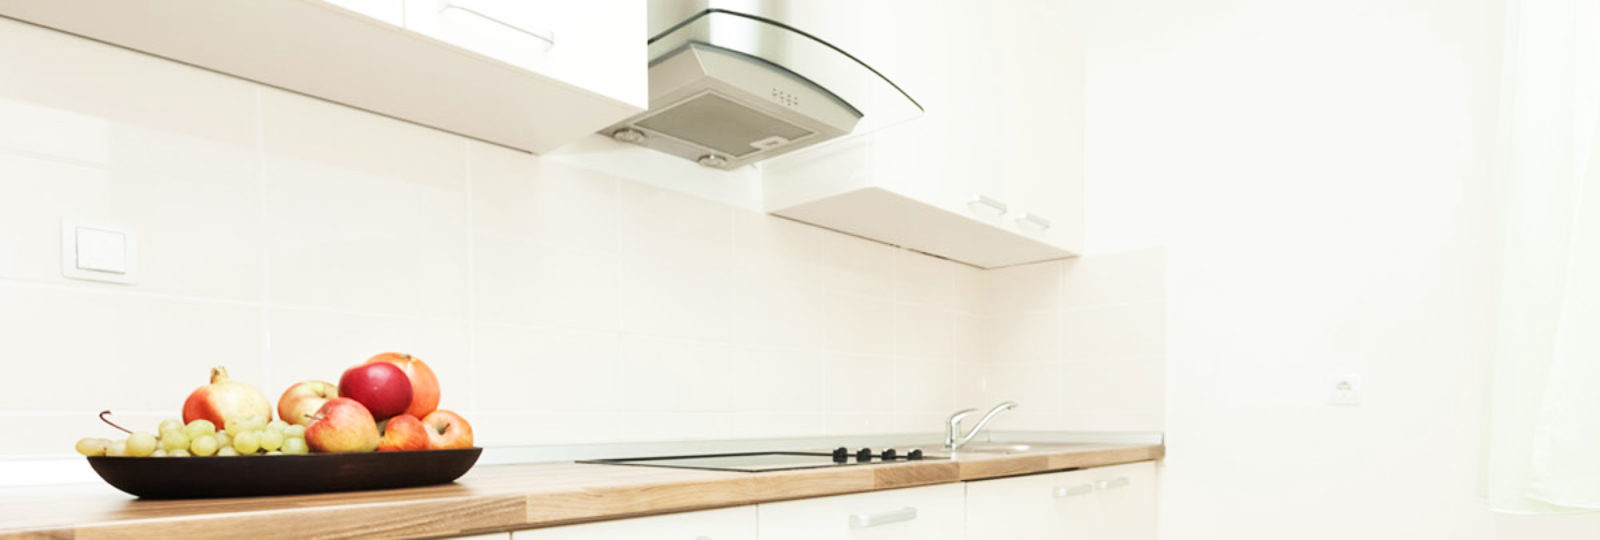 An image showing a domestic ventilation system that has been installed into a kitchen by Vent Logistics Limted.